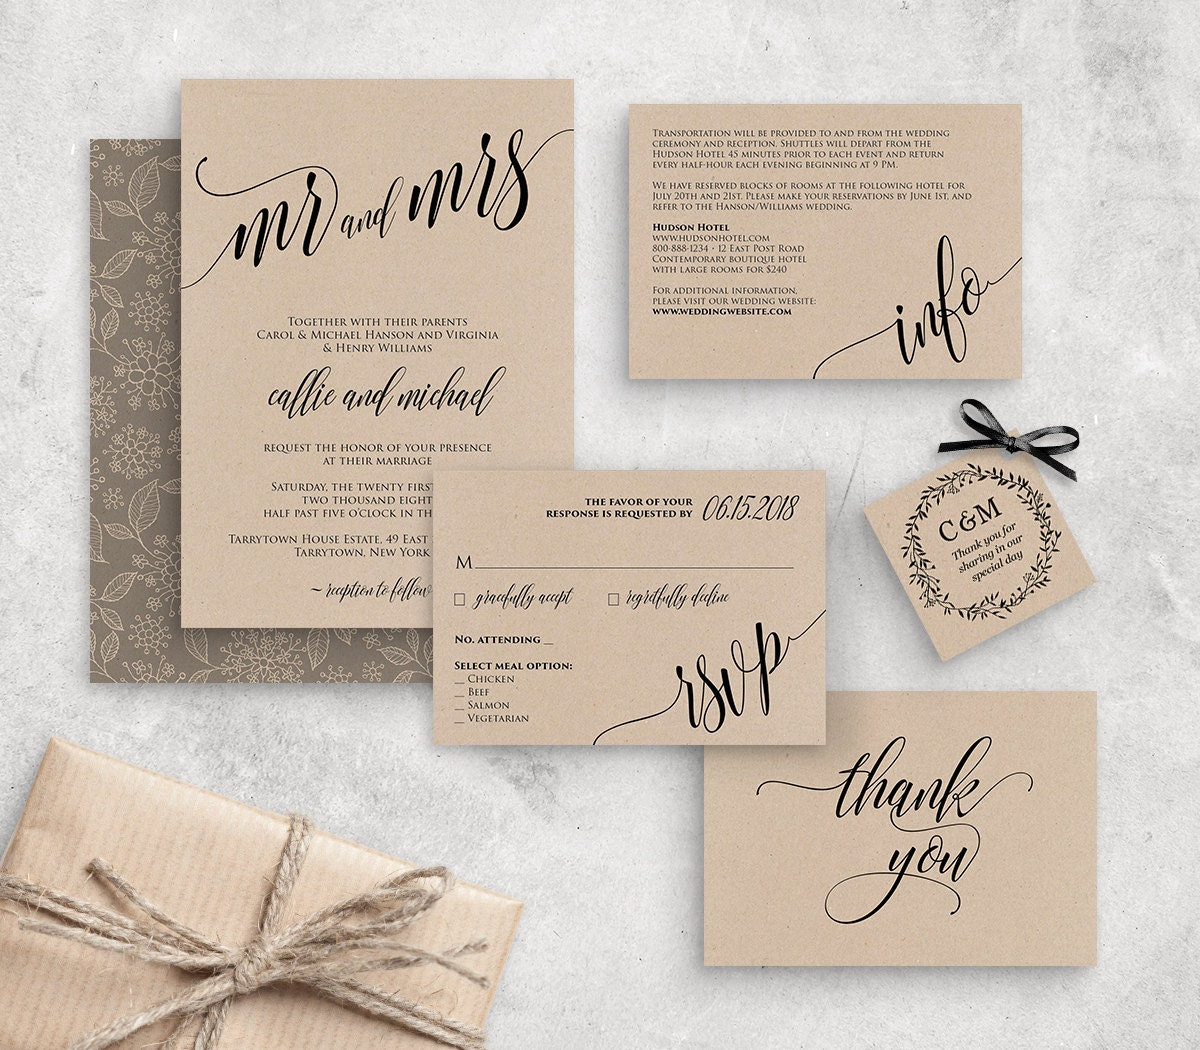 Wedding Invitation Template, Instant Download, Rustic Modern Wedding Invite Set, RSVP, Info Card